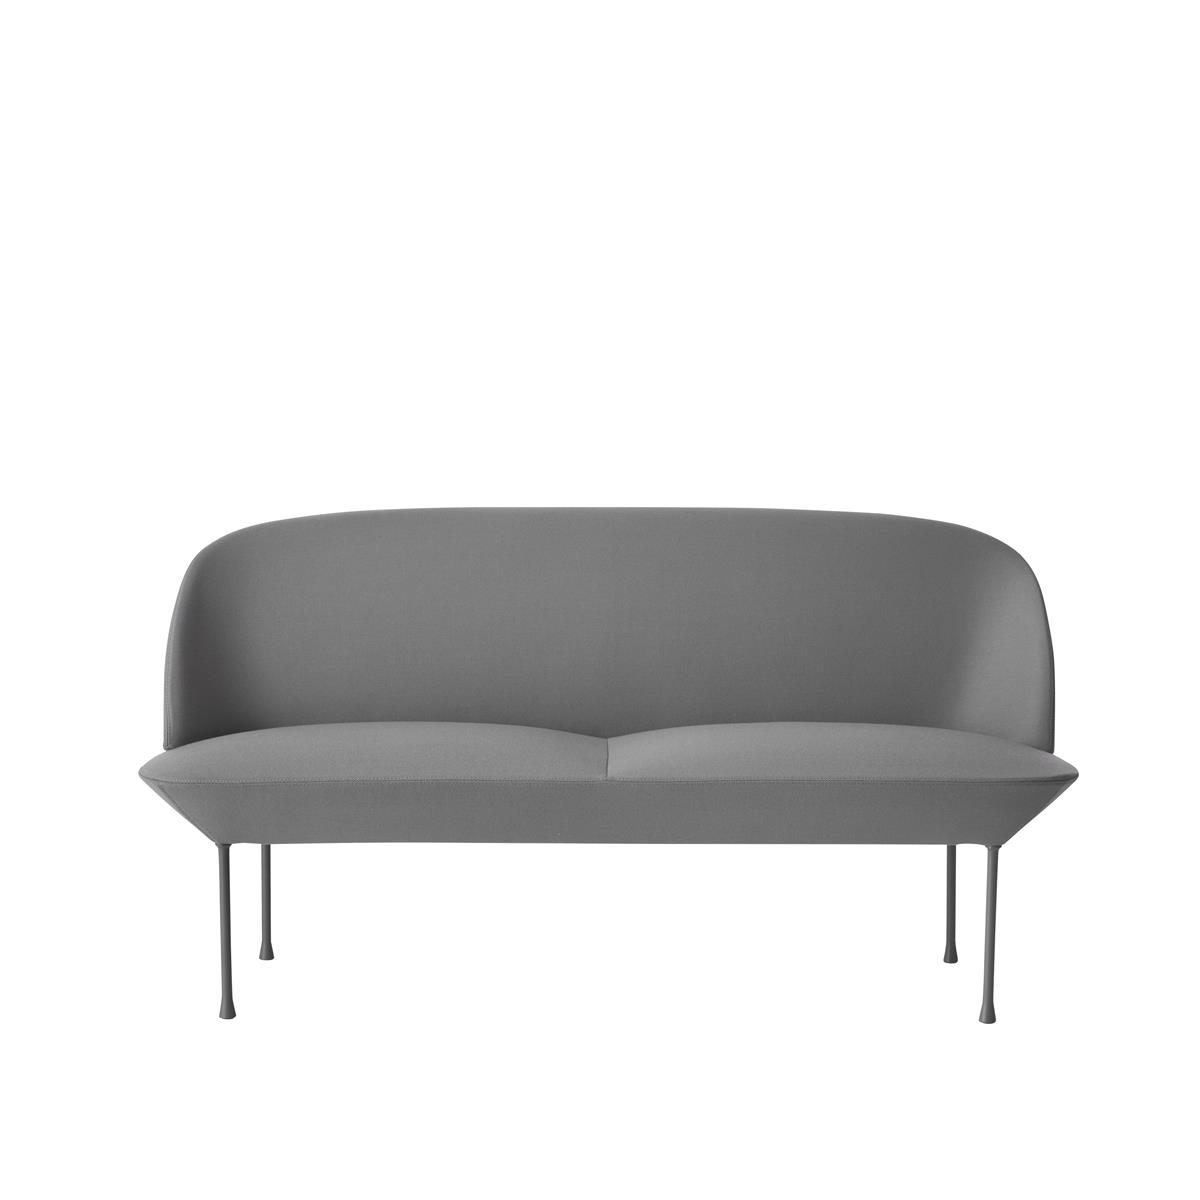 Oslo Sofa 2 Seater - Steelcut 160 & Light Grey Legs